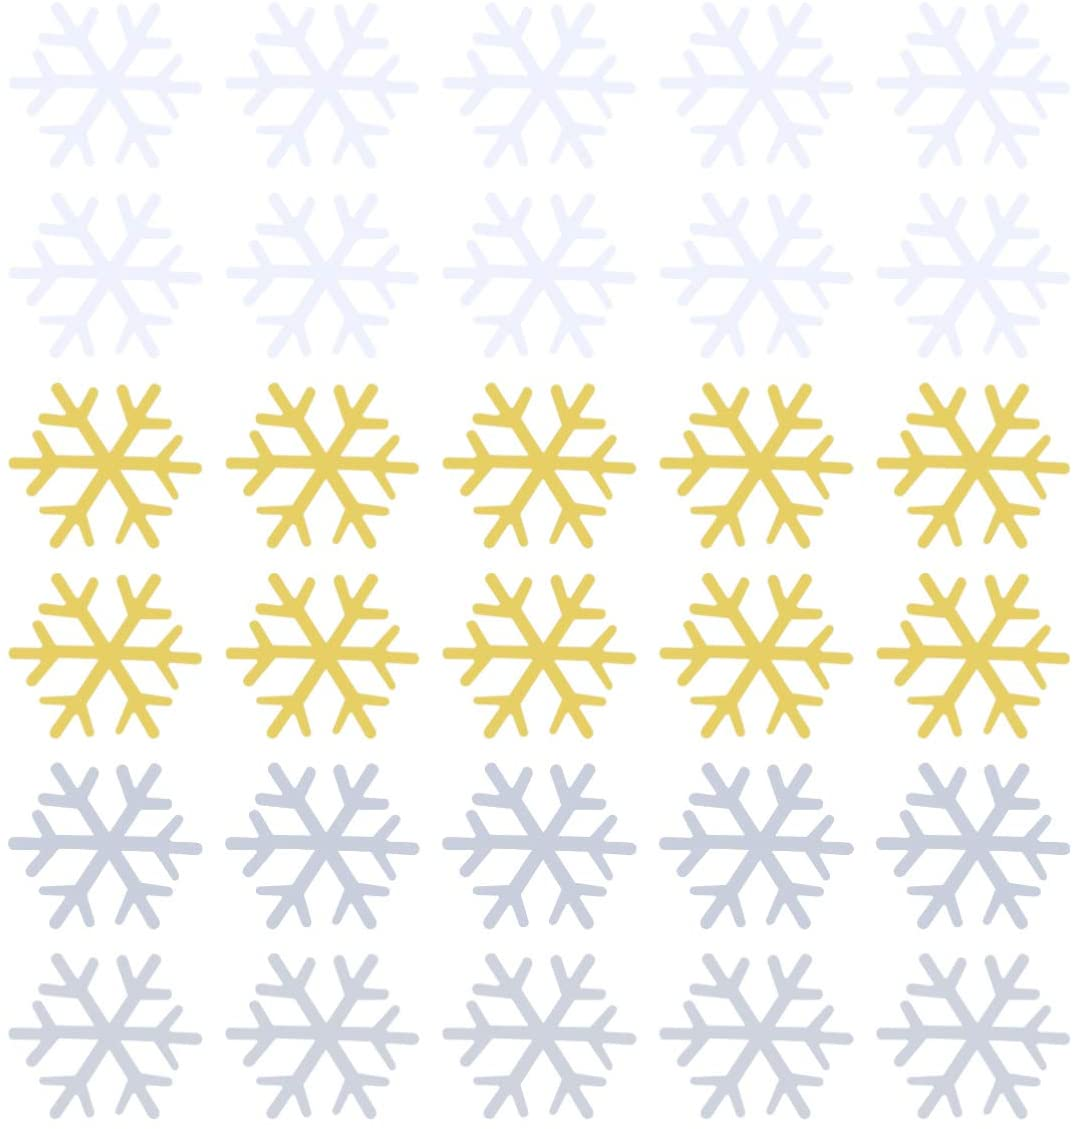 Holibanna 1800PCS Christmas Snowflake Confettis Sequins Holiday Confettis Table Scatters New Year Wedding Party Decoration -18mm